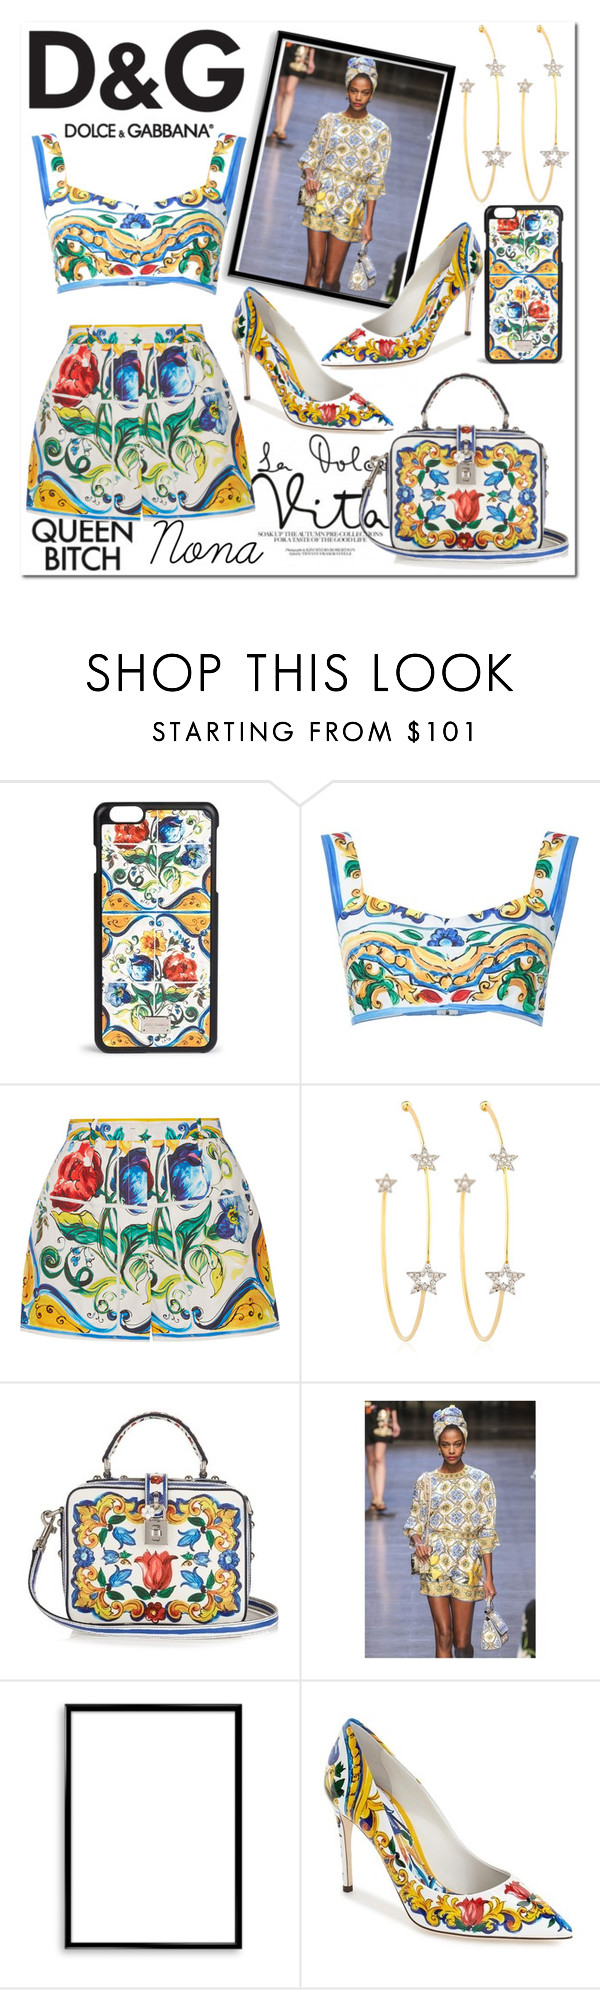 """""""D&G"""" by delunaray ❤ liked on Polyvore featuring Dolce&Gabbana, PERLOTA, Bomedo and polyvoreeditorial"""